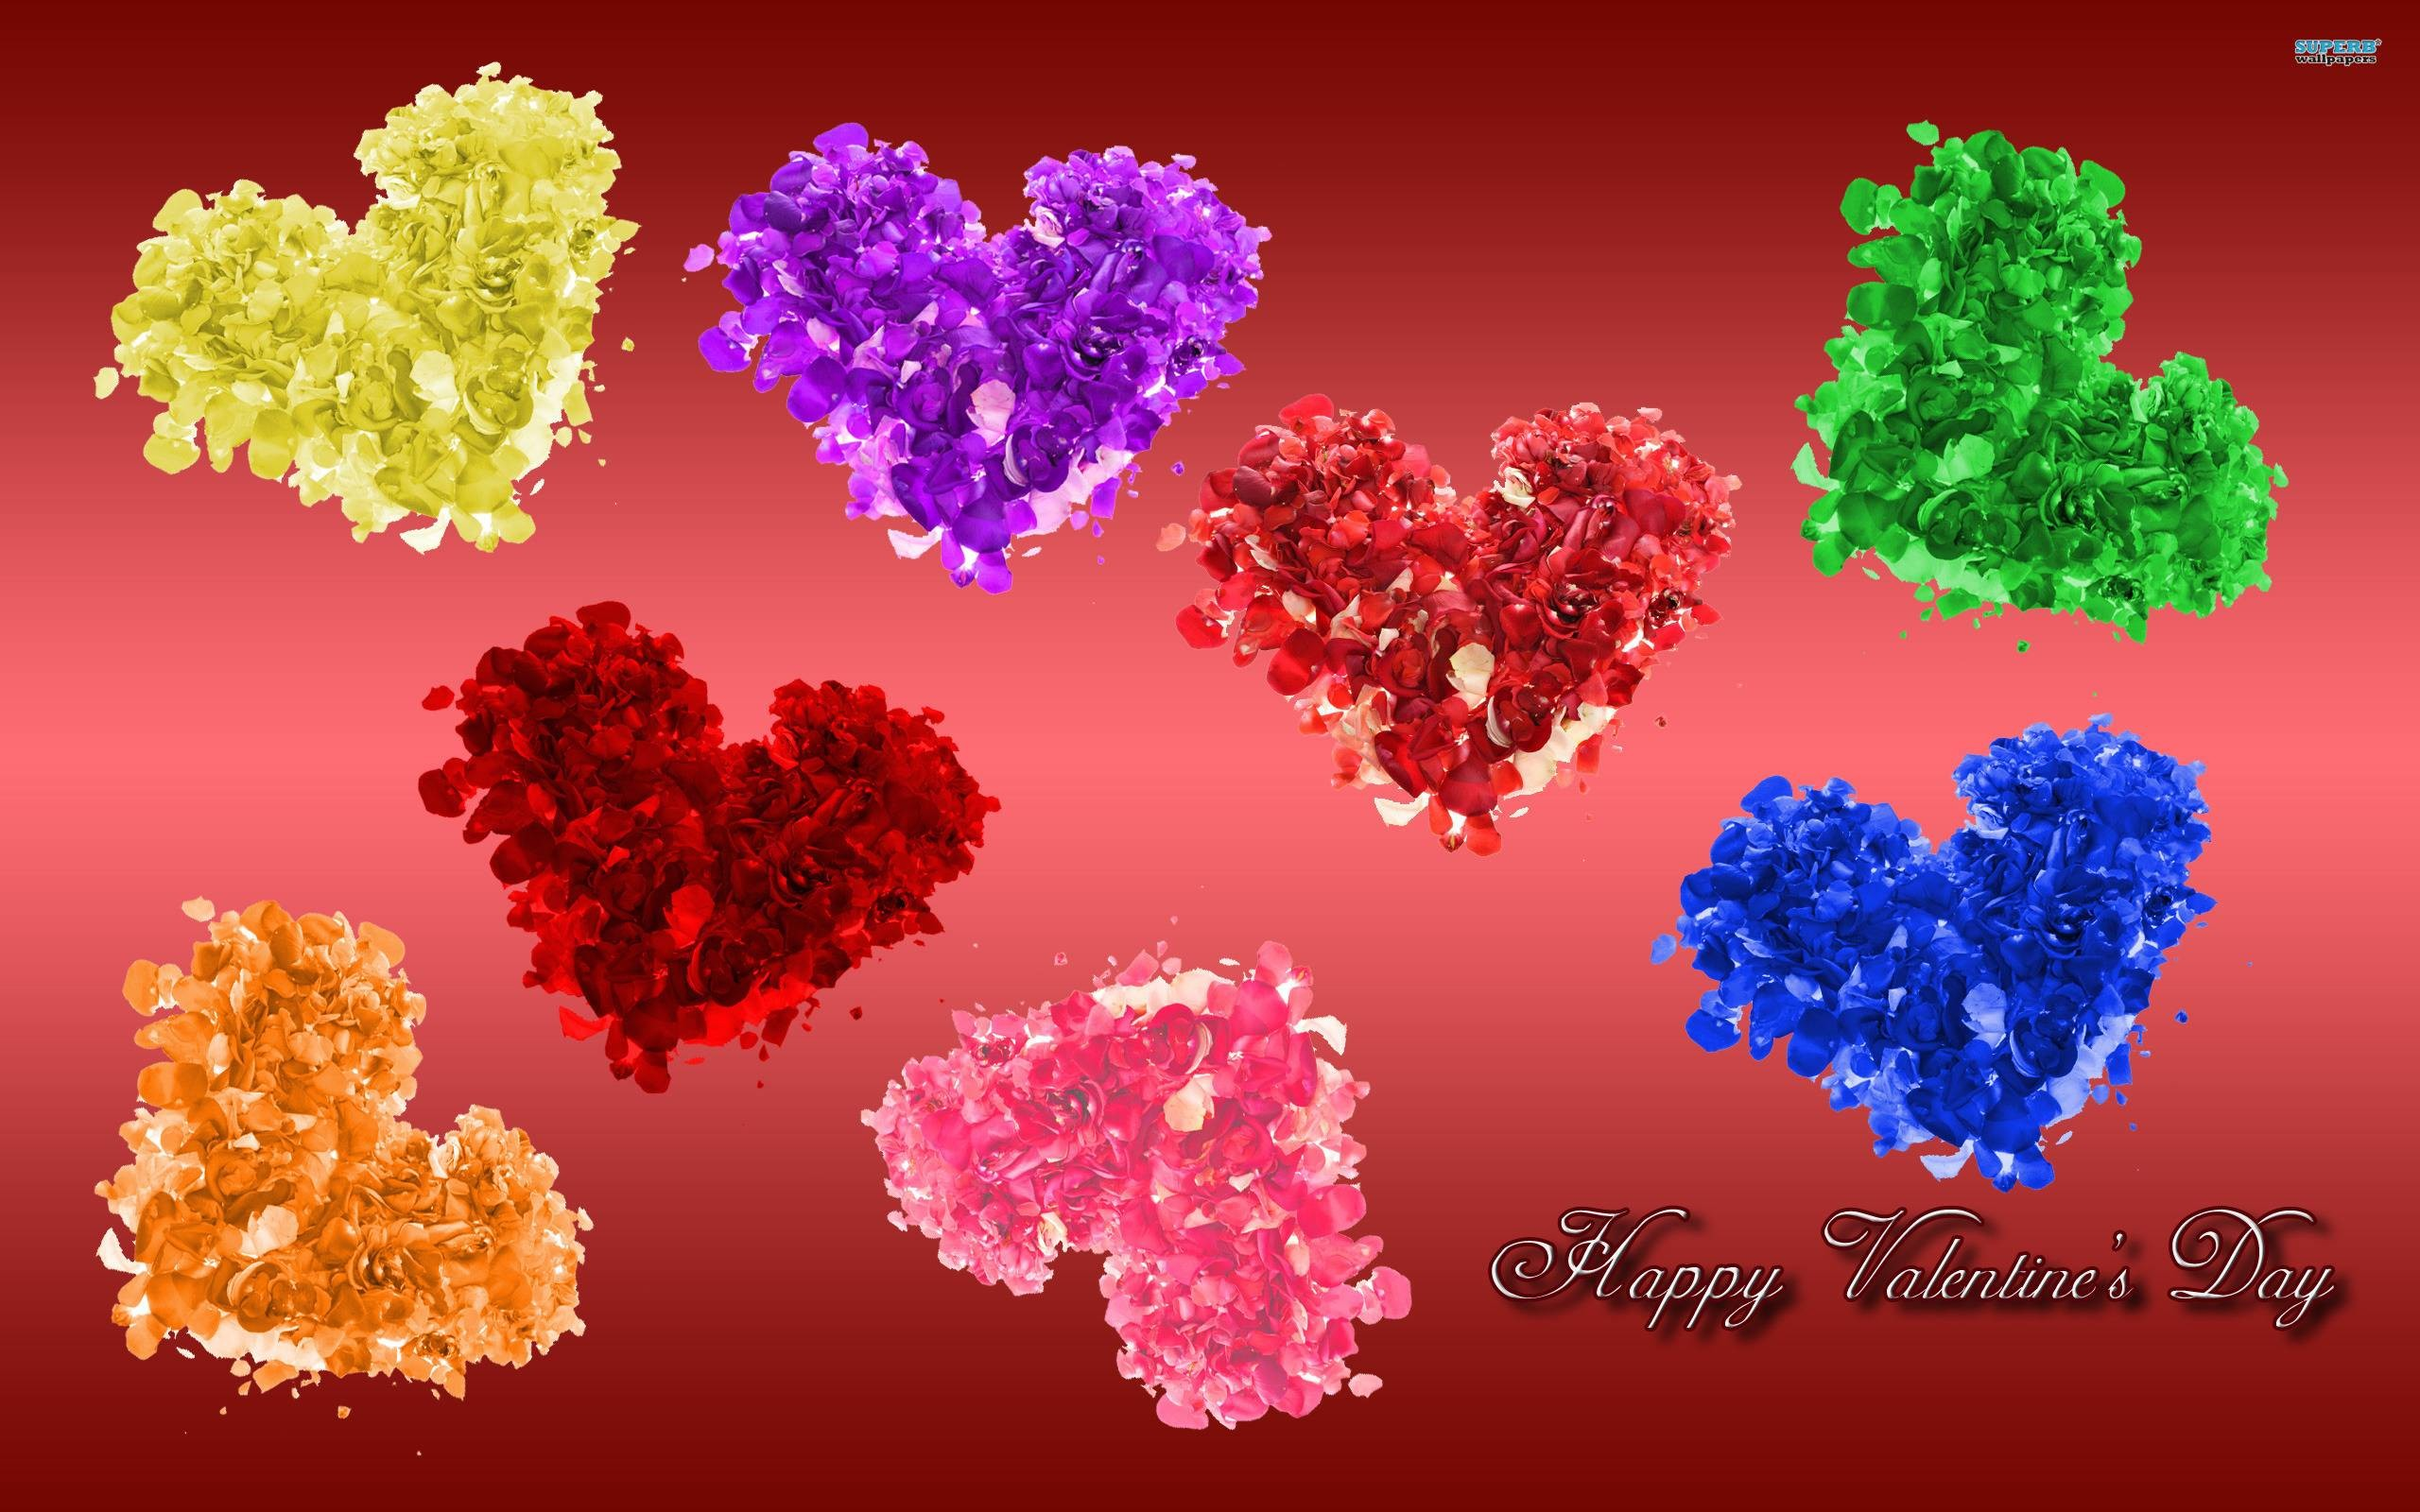 Wallpapers For Happy Valentines Day Wallpaper Desktop